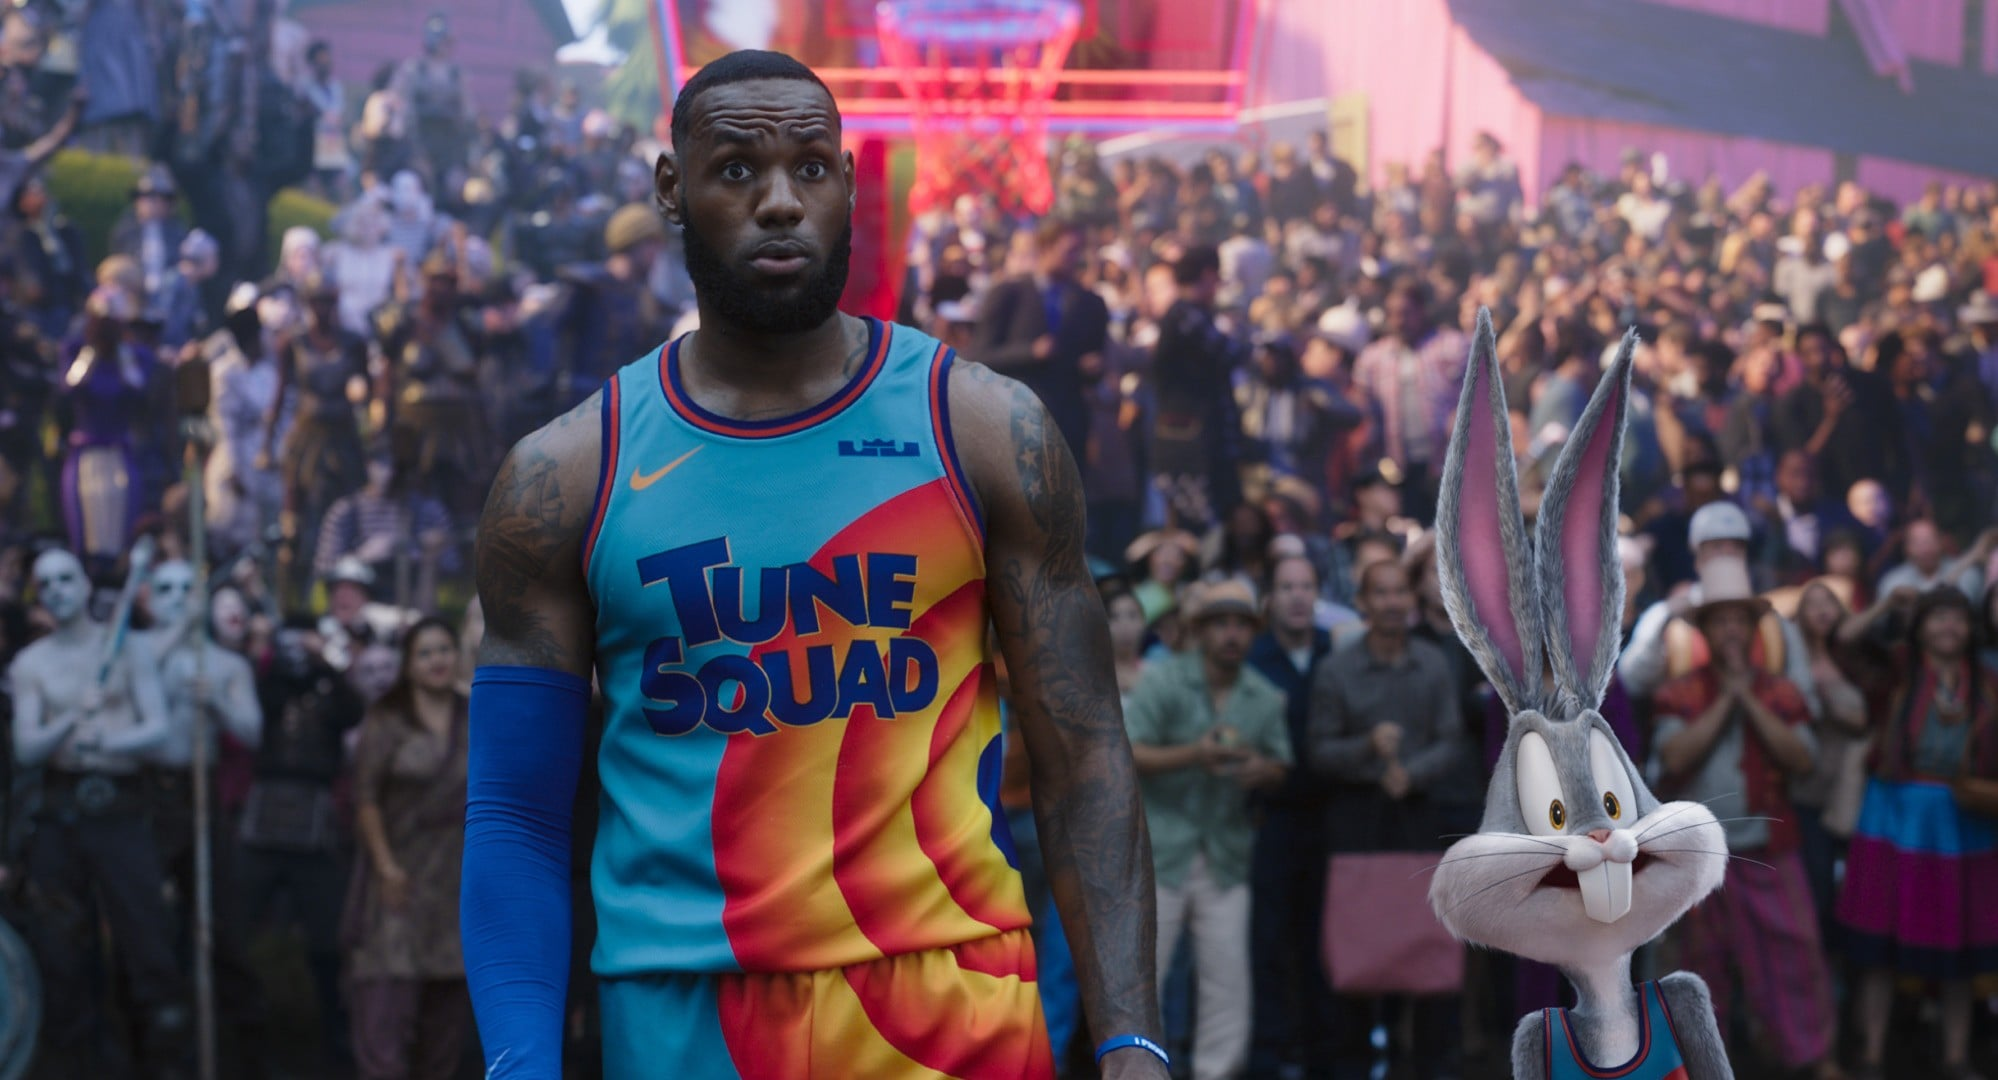 SPACE JAM: A NEW LEGACY, from left: LeBron James, Bugs Bunny